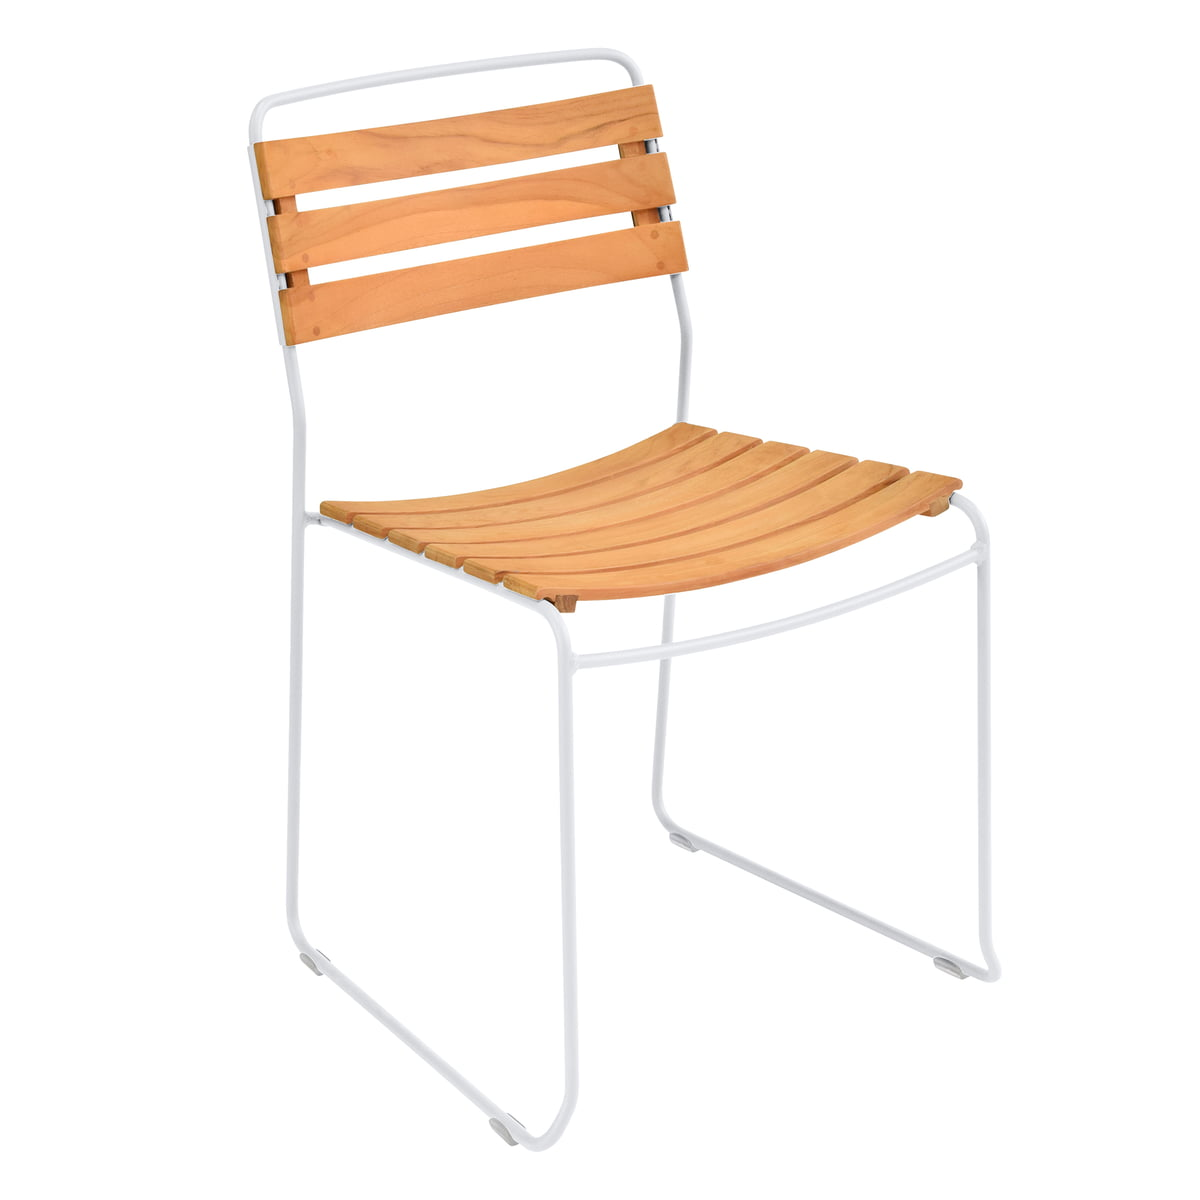 The Fermob   Surprising Teck Chair, Teak / Cotton White